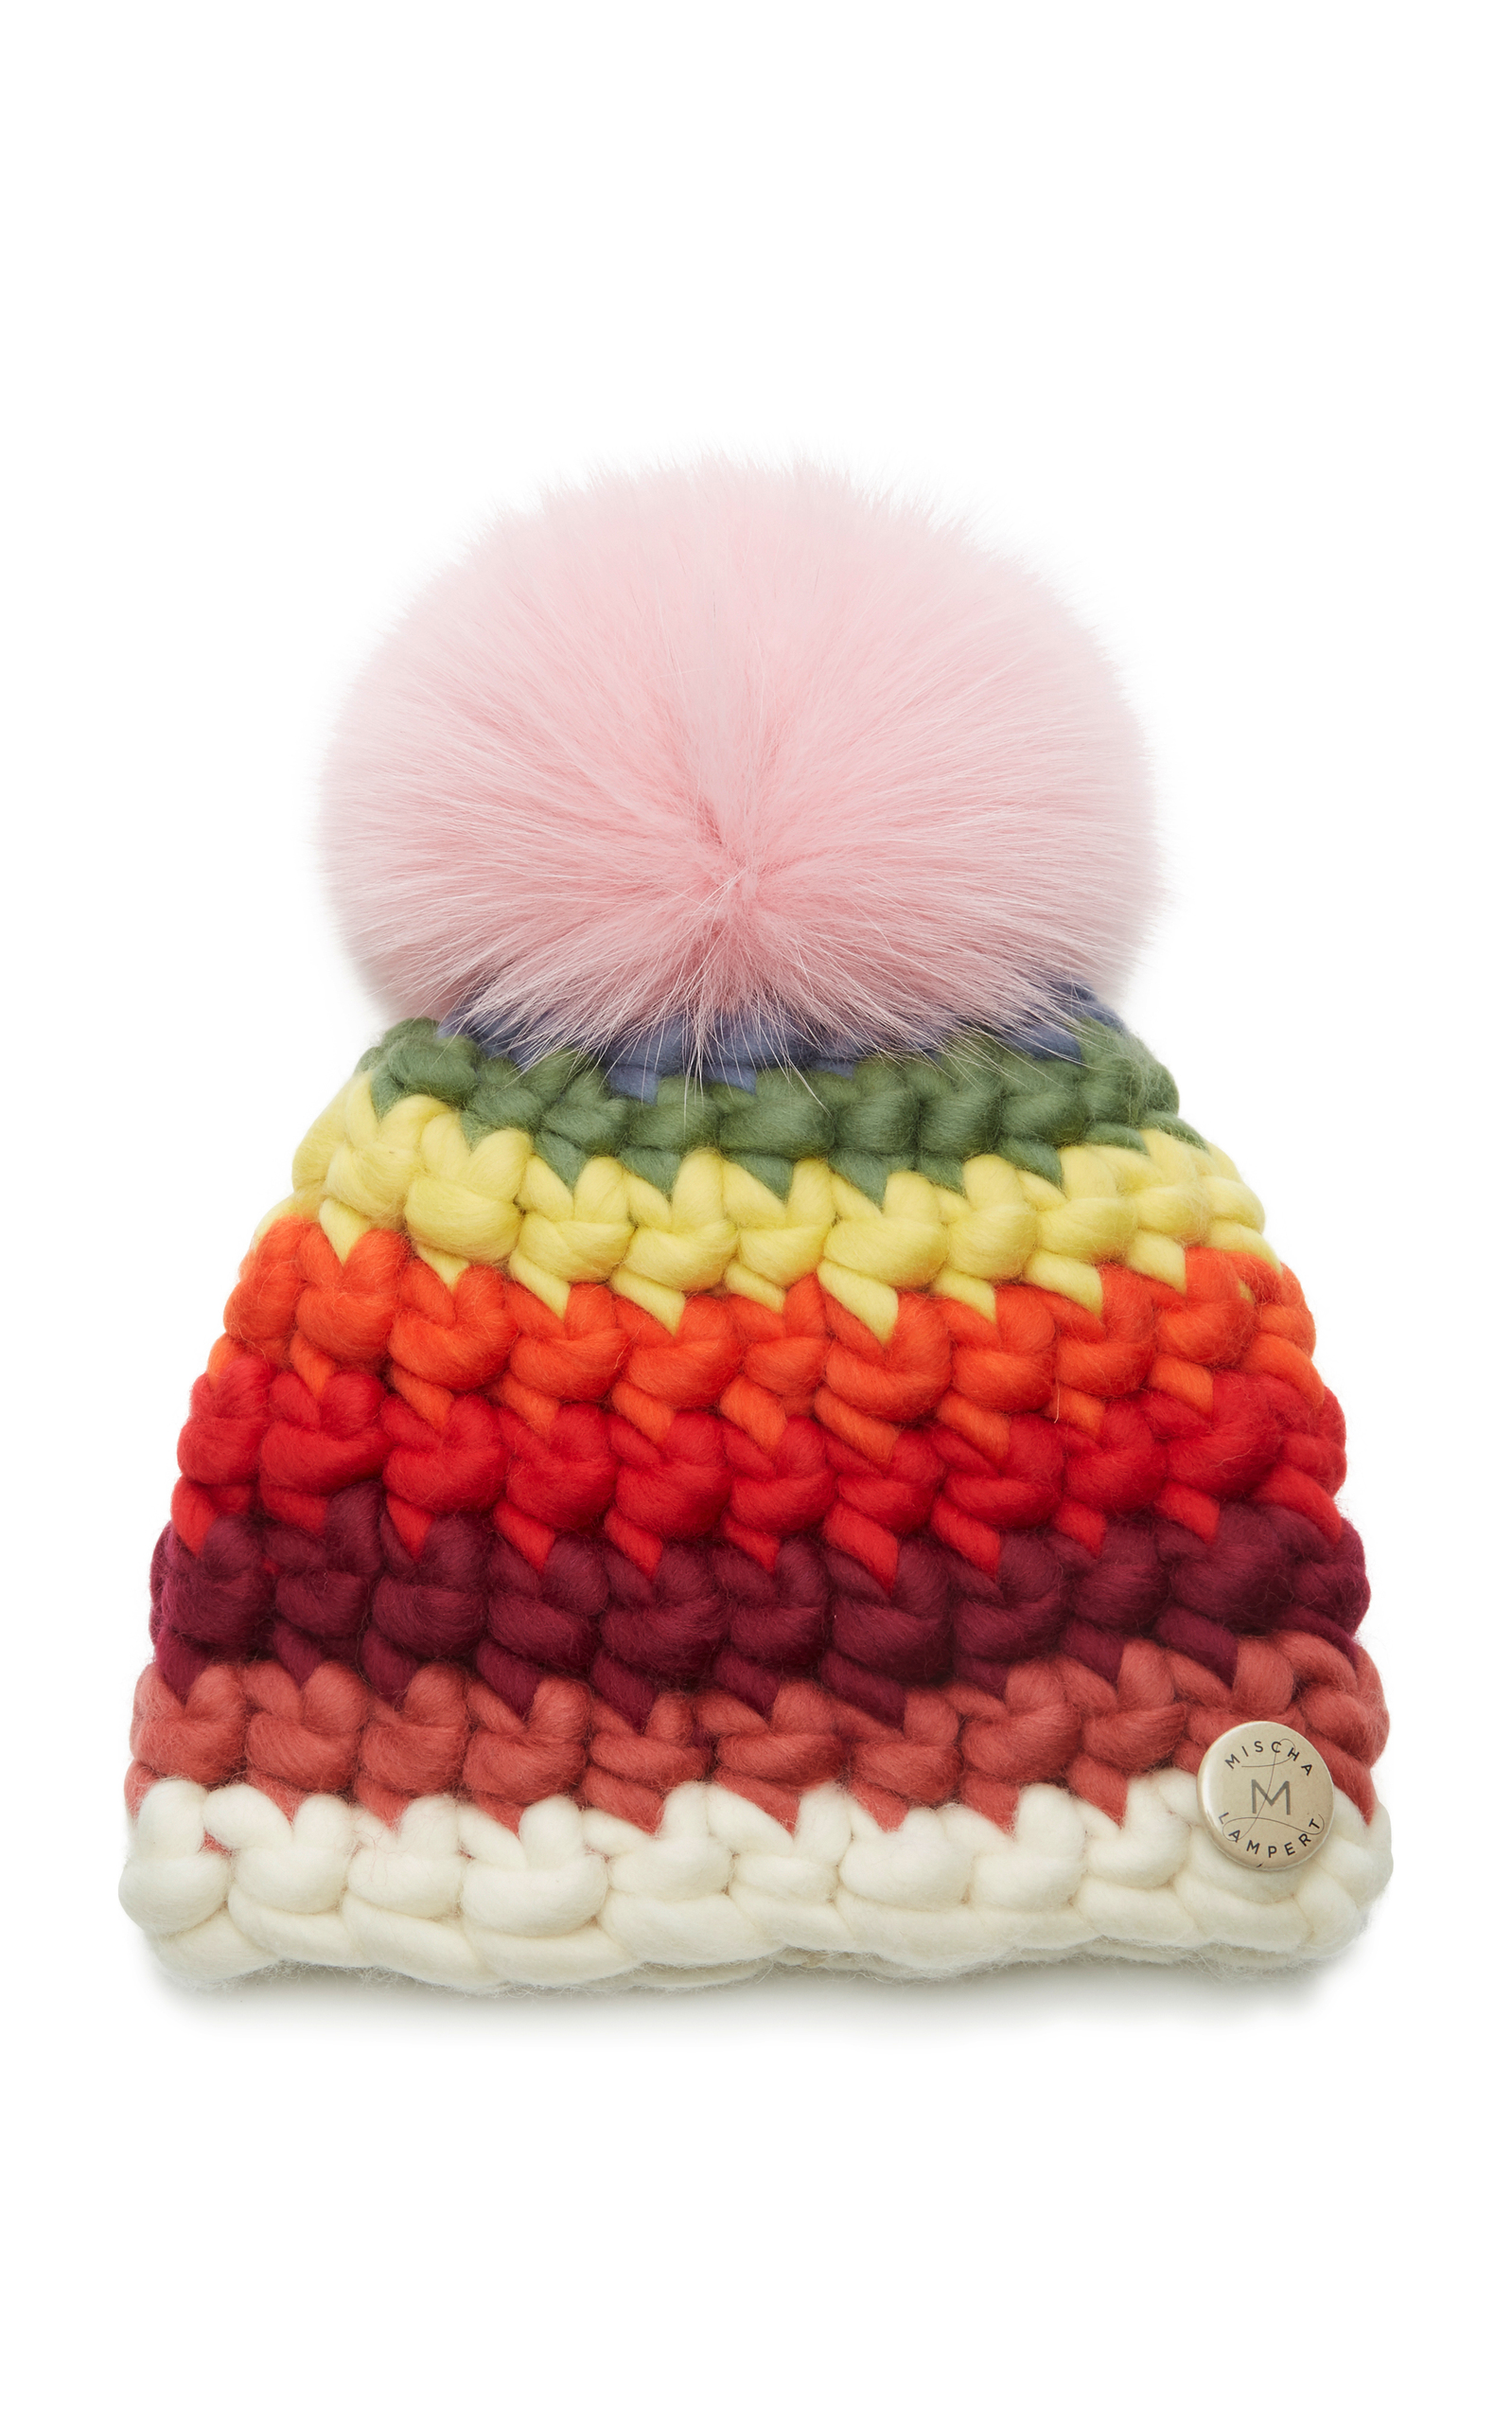 MISCHA LAMPERT STRIPED CHILDREN'S BEANIE